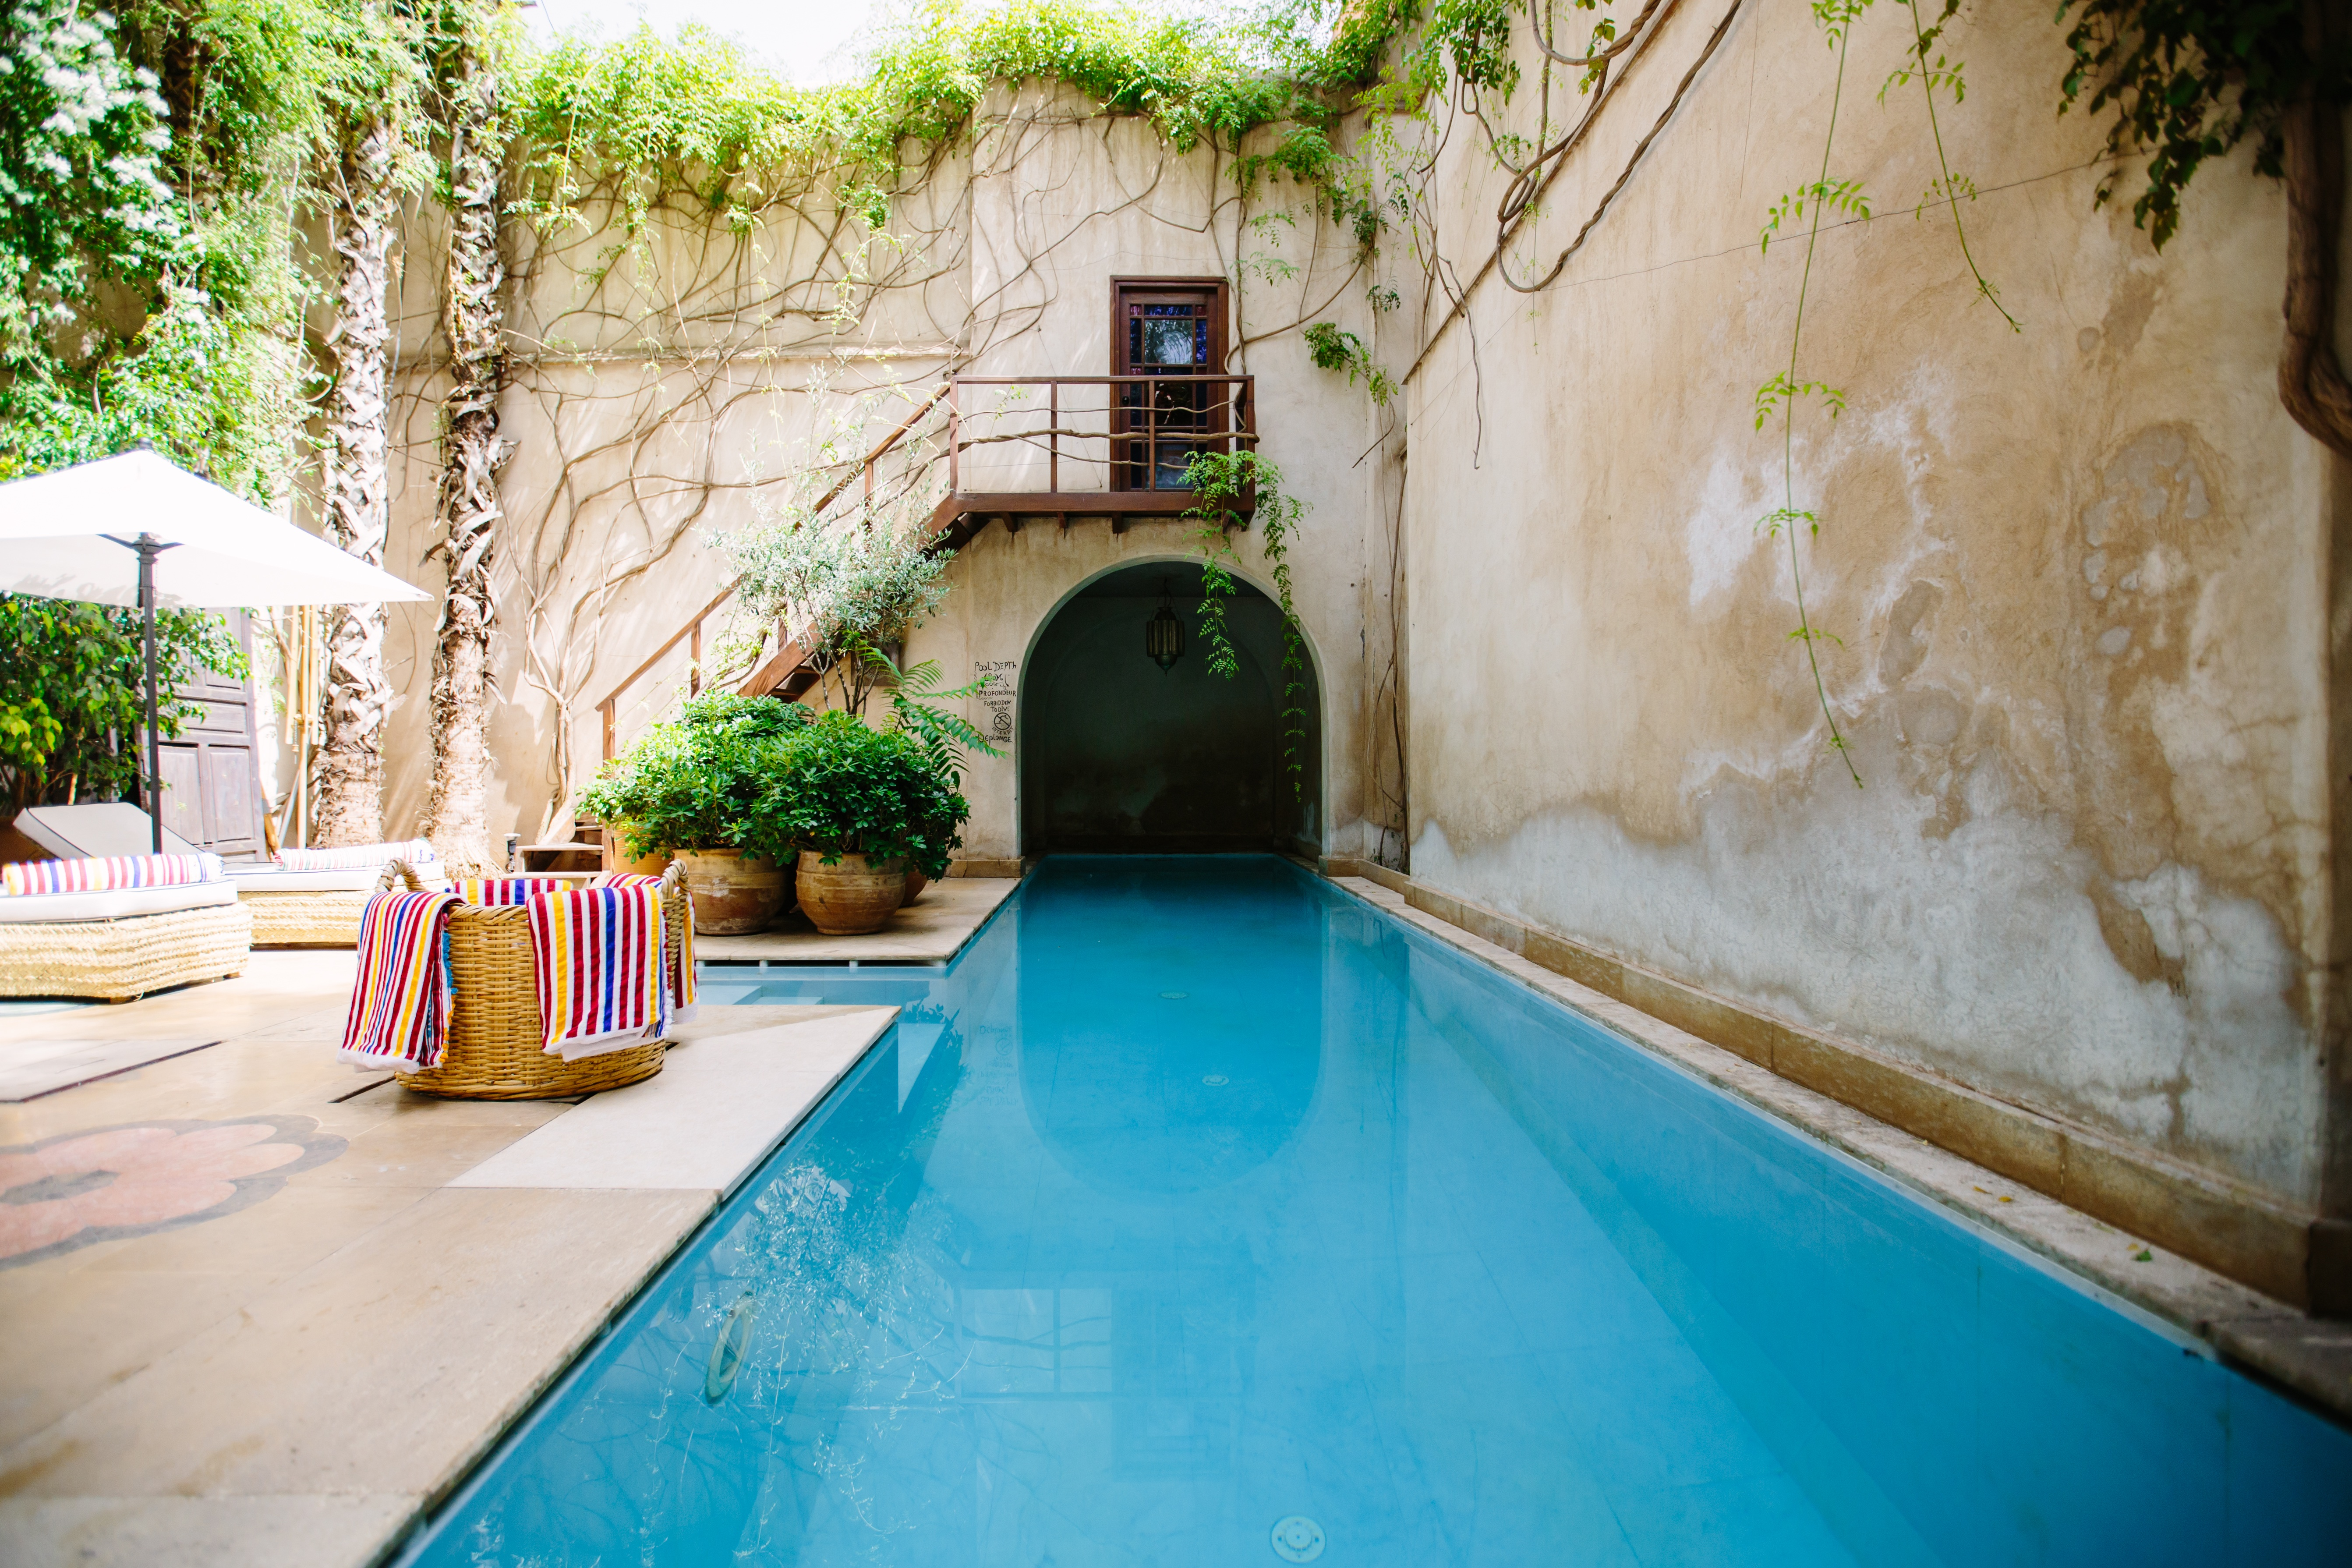 About Luxury Amp Boutique Hotels In Malta Boutique And